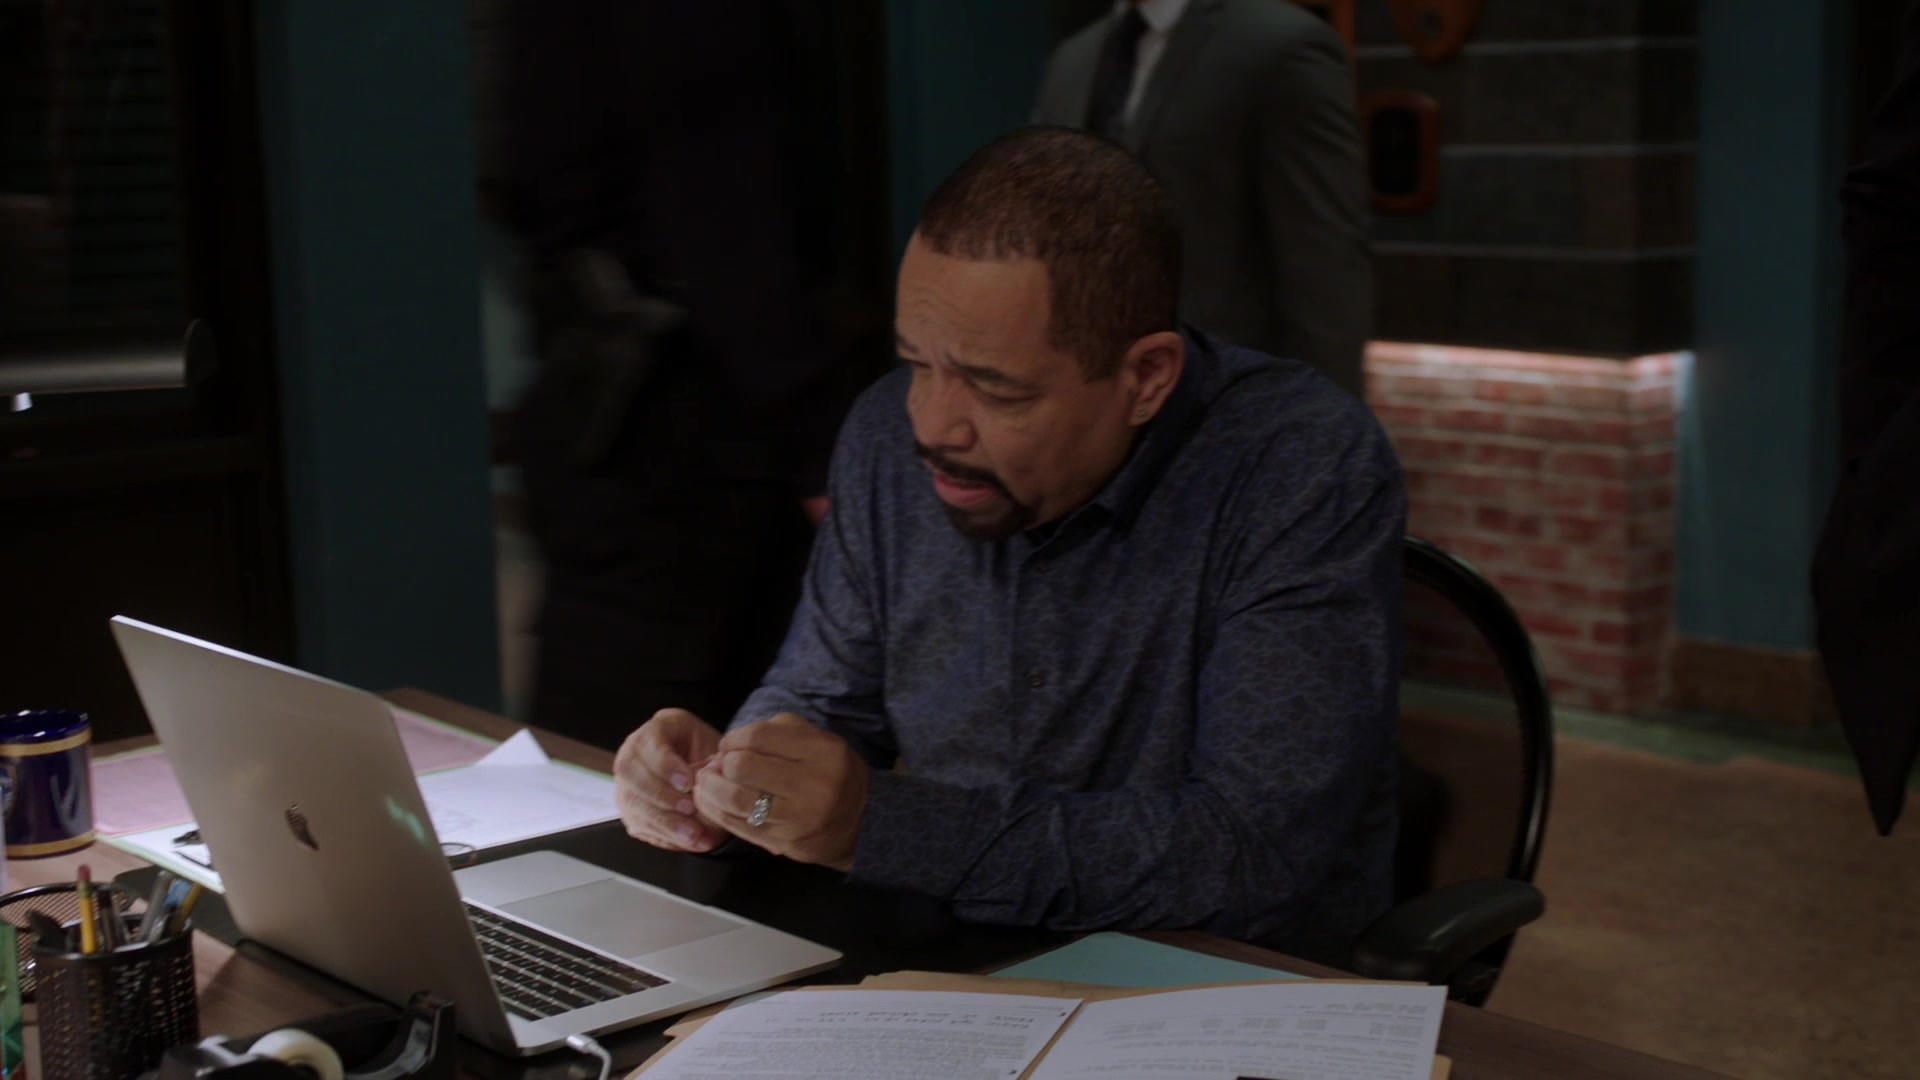 Apple macbook pro laptops in law order special victims for Hell s kitchen season 15 episode 1